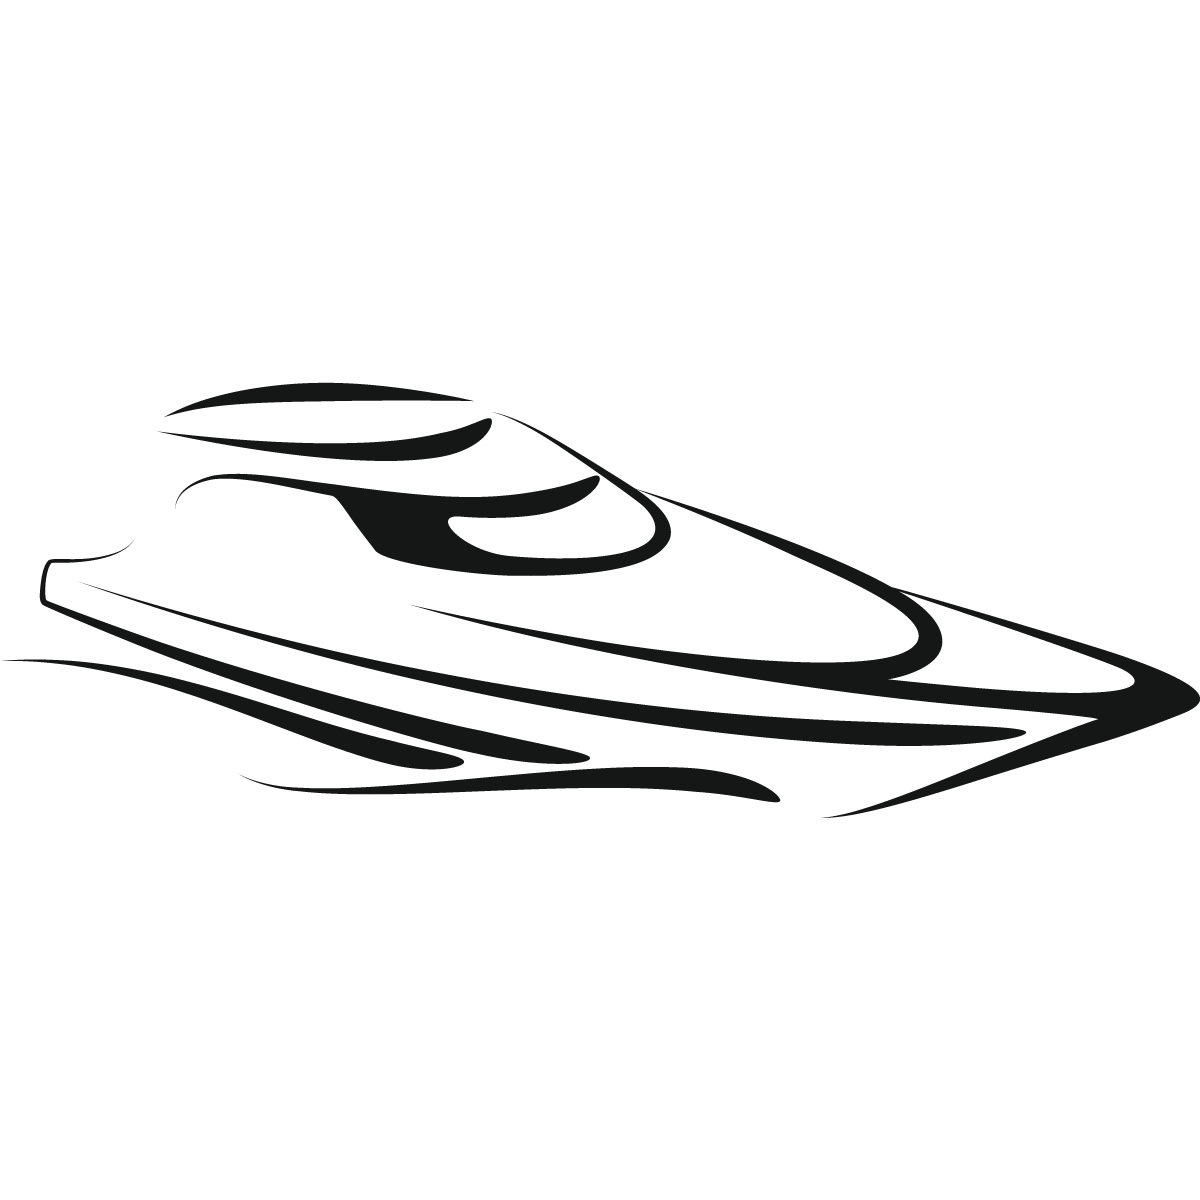 Speed Boat Clip Art Related Keywords & Suggestions - Speed Boat Clip ...